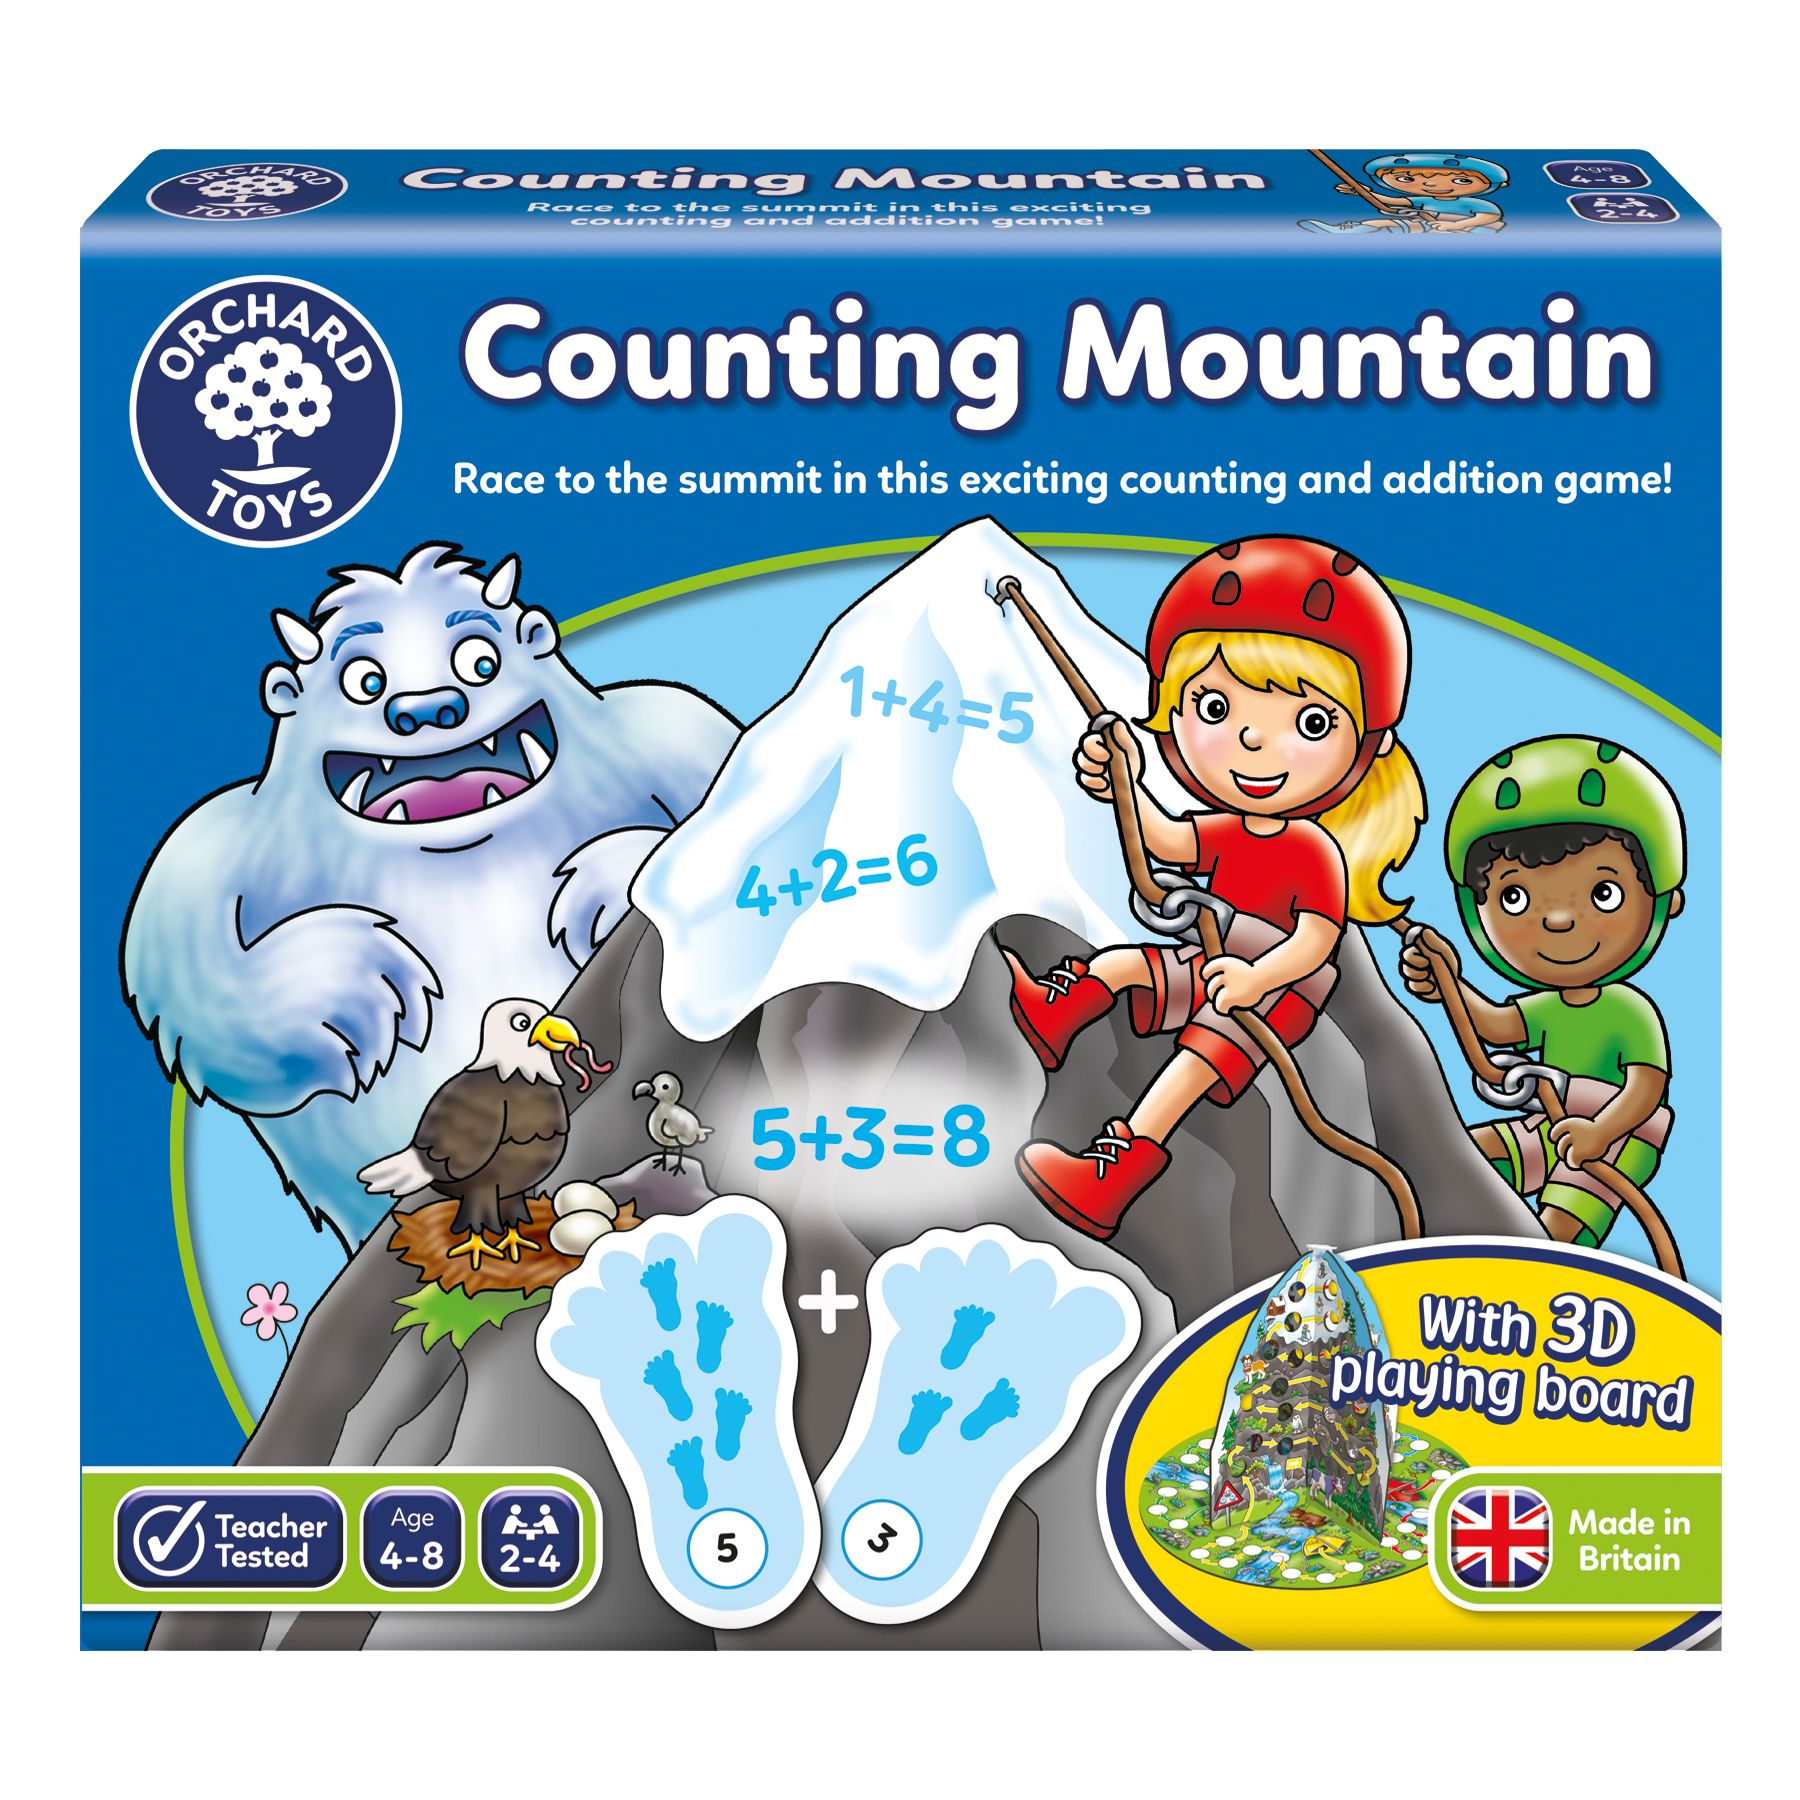 Counting Mountain Game Orchard toys, Addition games, Fun